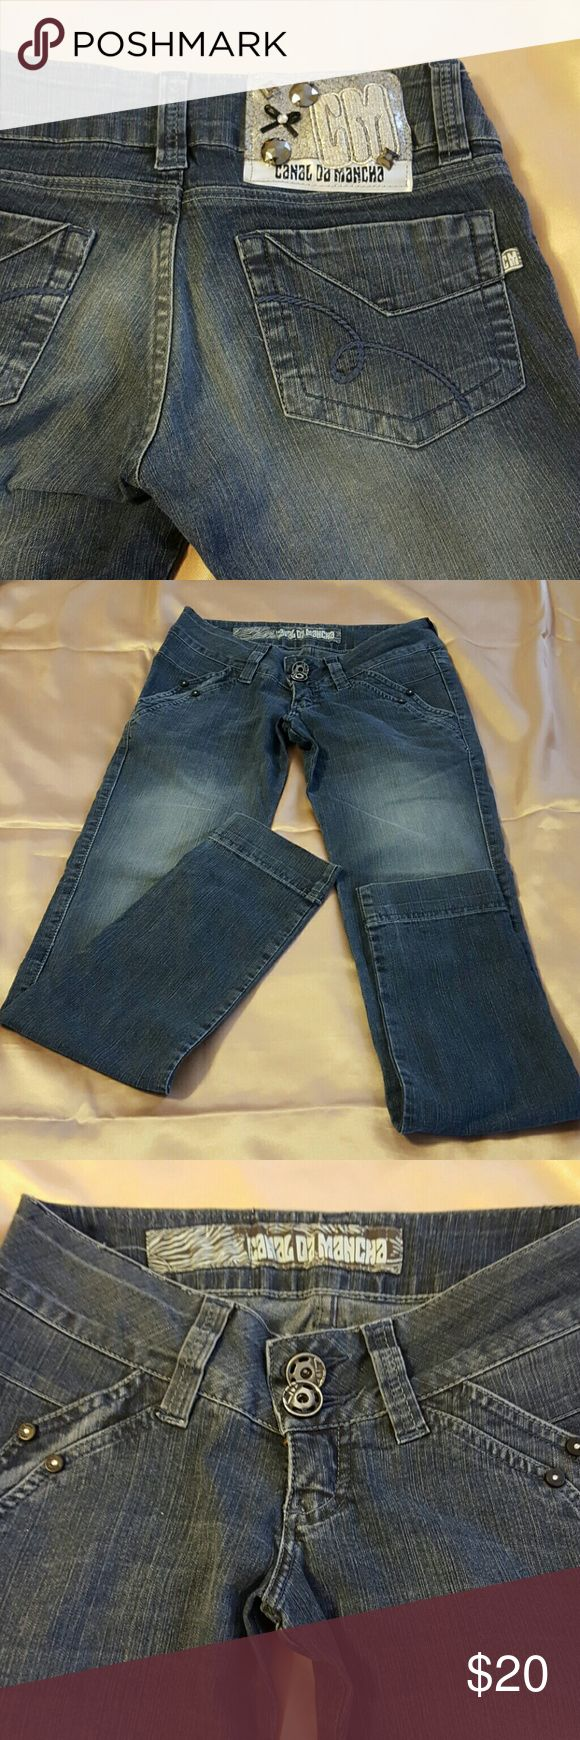 Canal da Mancha Brazilian skinny jeans size 36/6 Very cute Jeans with little black and rhinestones on at the front pockets . Canal da Mancha  Jeans Skinny